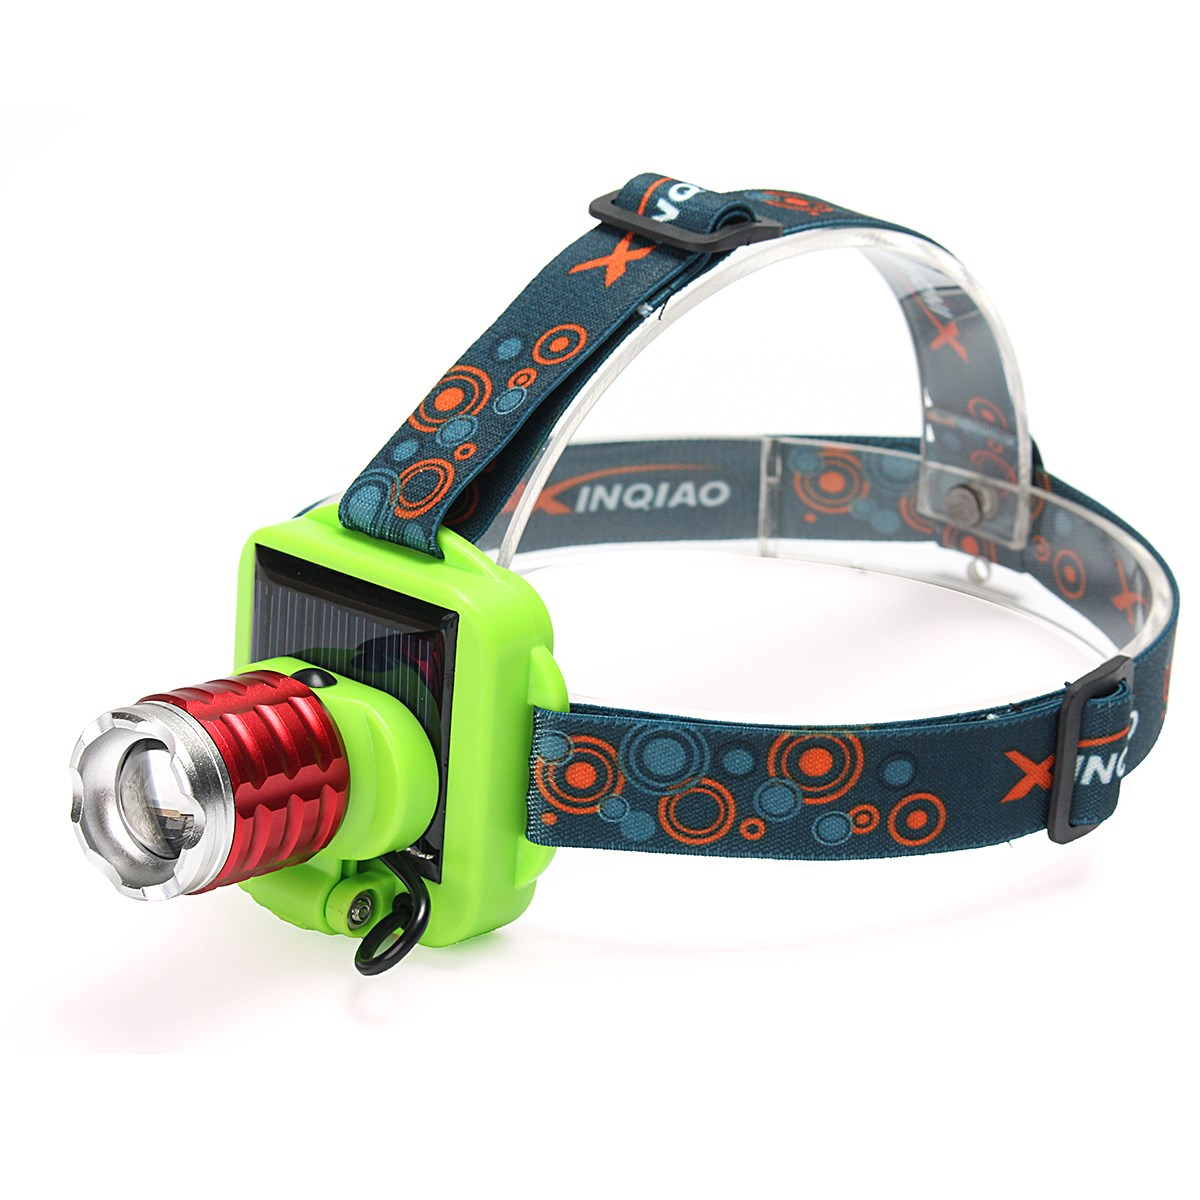 Elfeland 3 Modes Solar Charge Focusing Led Headlight USB Rechargeable Adjustable Headlamp Bicycle Head Light Lamp+usb Cable+lens